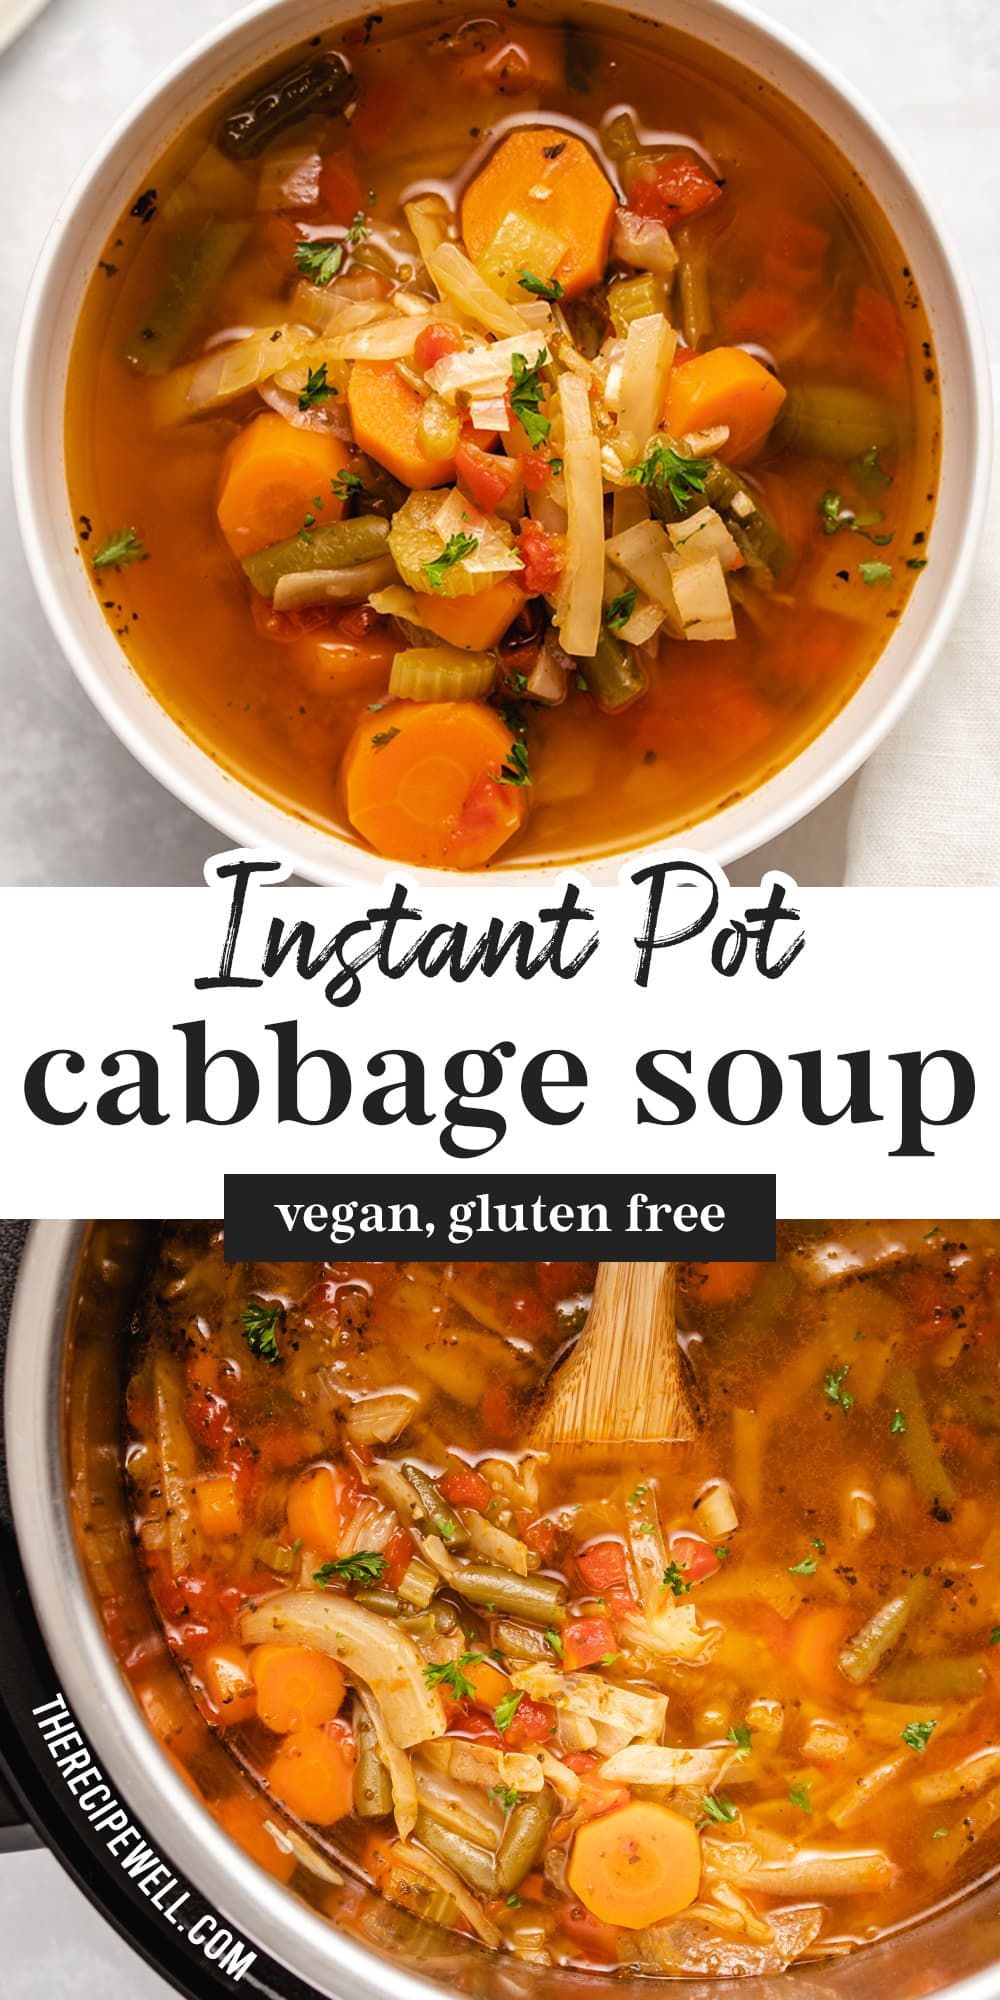 Instant Pot Cabbage Soup is loaded with nutritious vegetables in a flavourful tomato-based broth. See the post for so many ways to customize this healthy soup! It's perfect for meal prep and freezer friendly. via @therecipewell